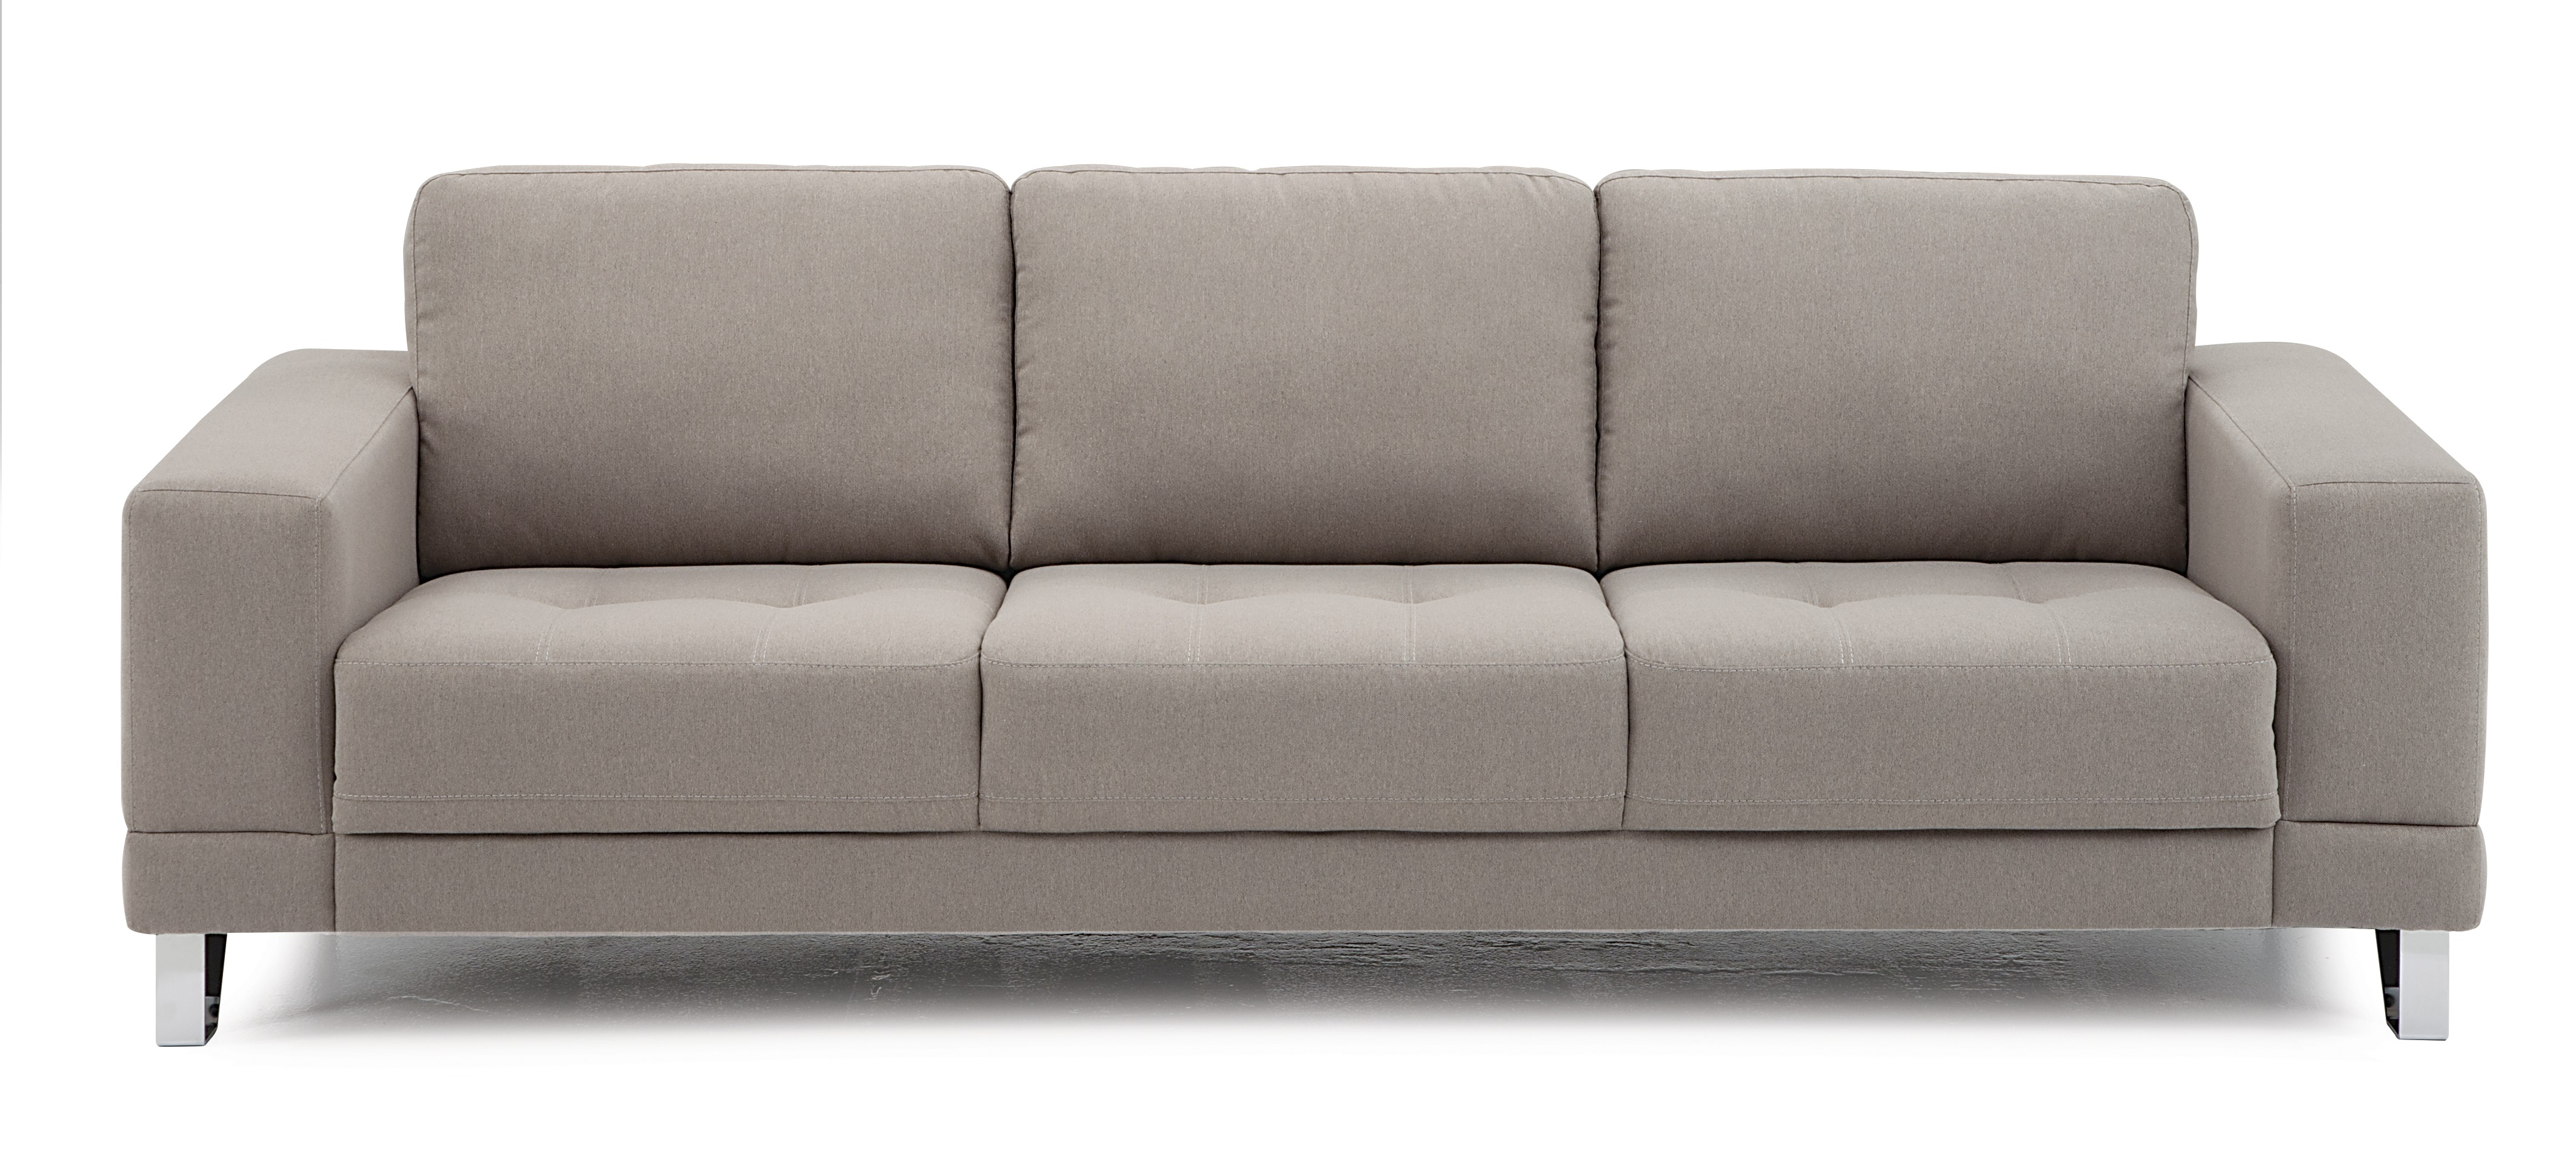 Seattle Sofa Collection 450